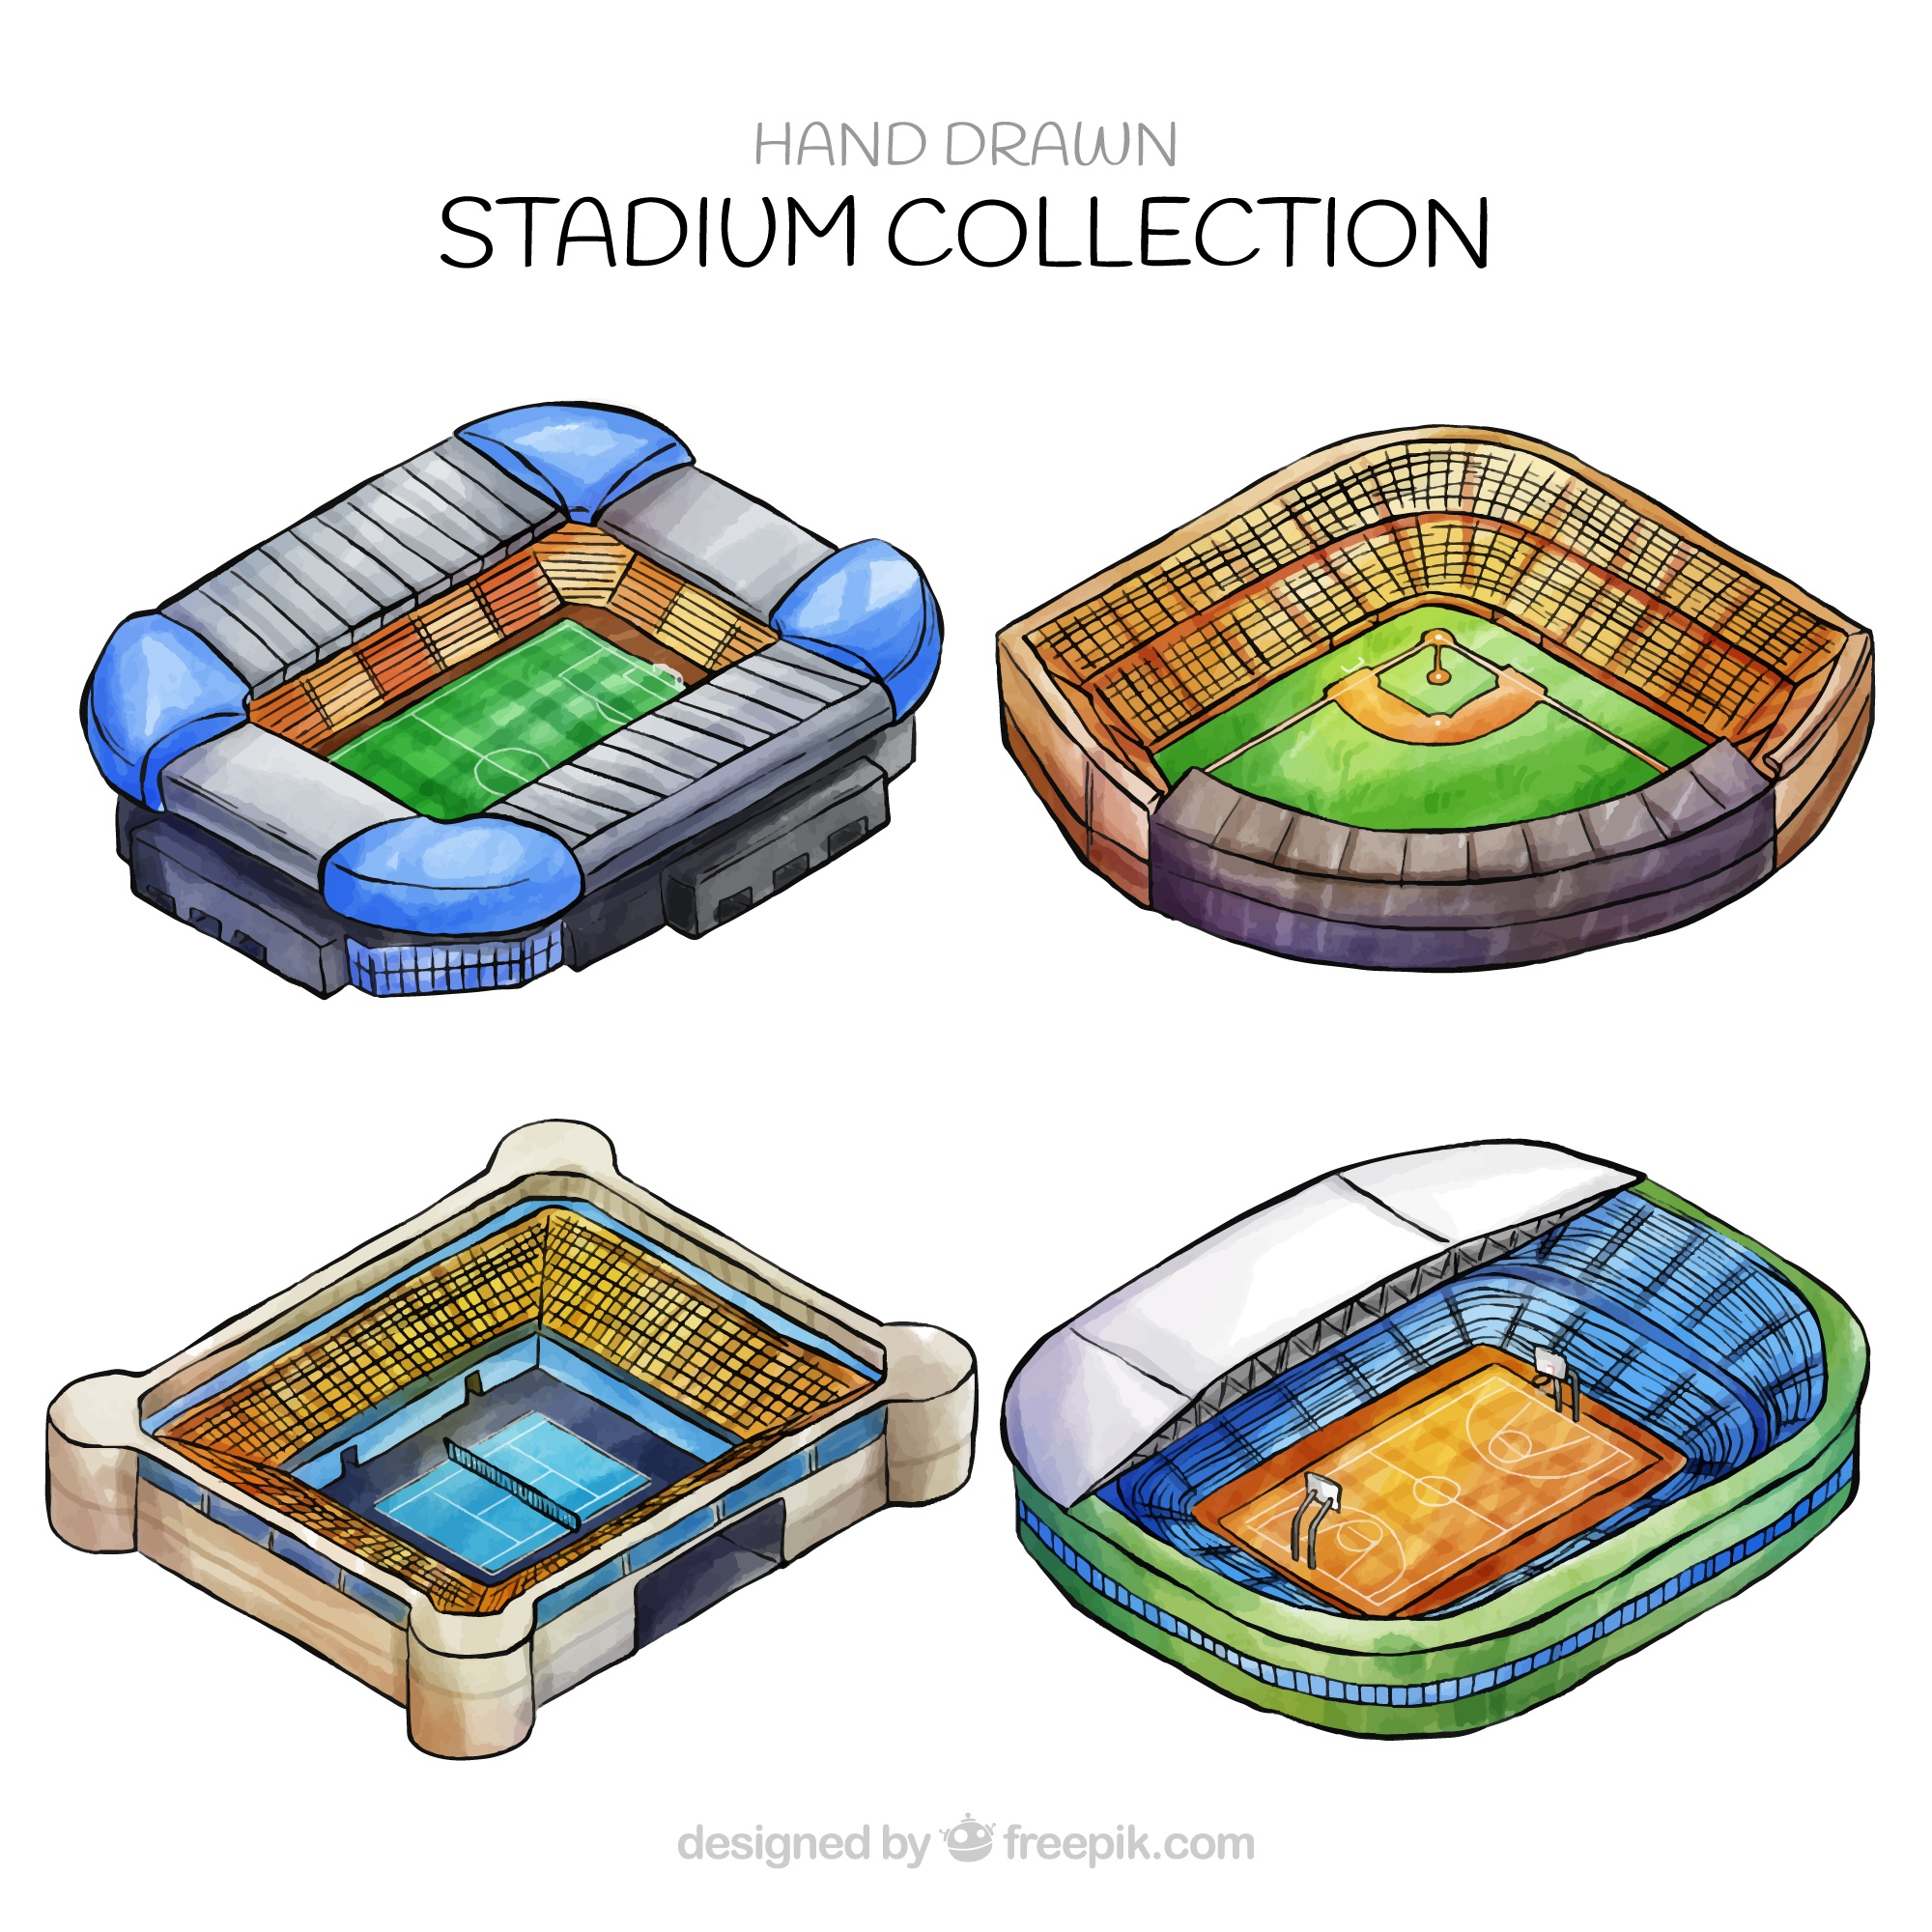 Stadiums collection in hand drawn style